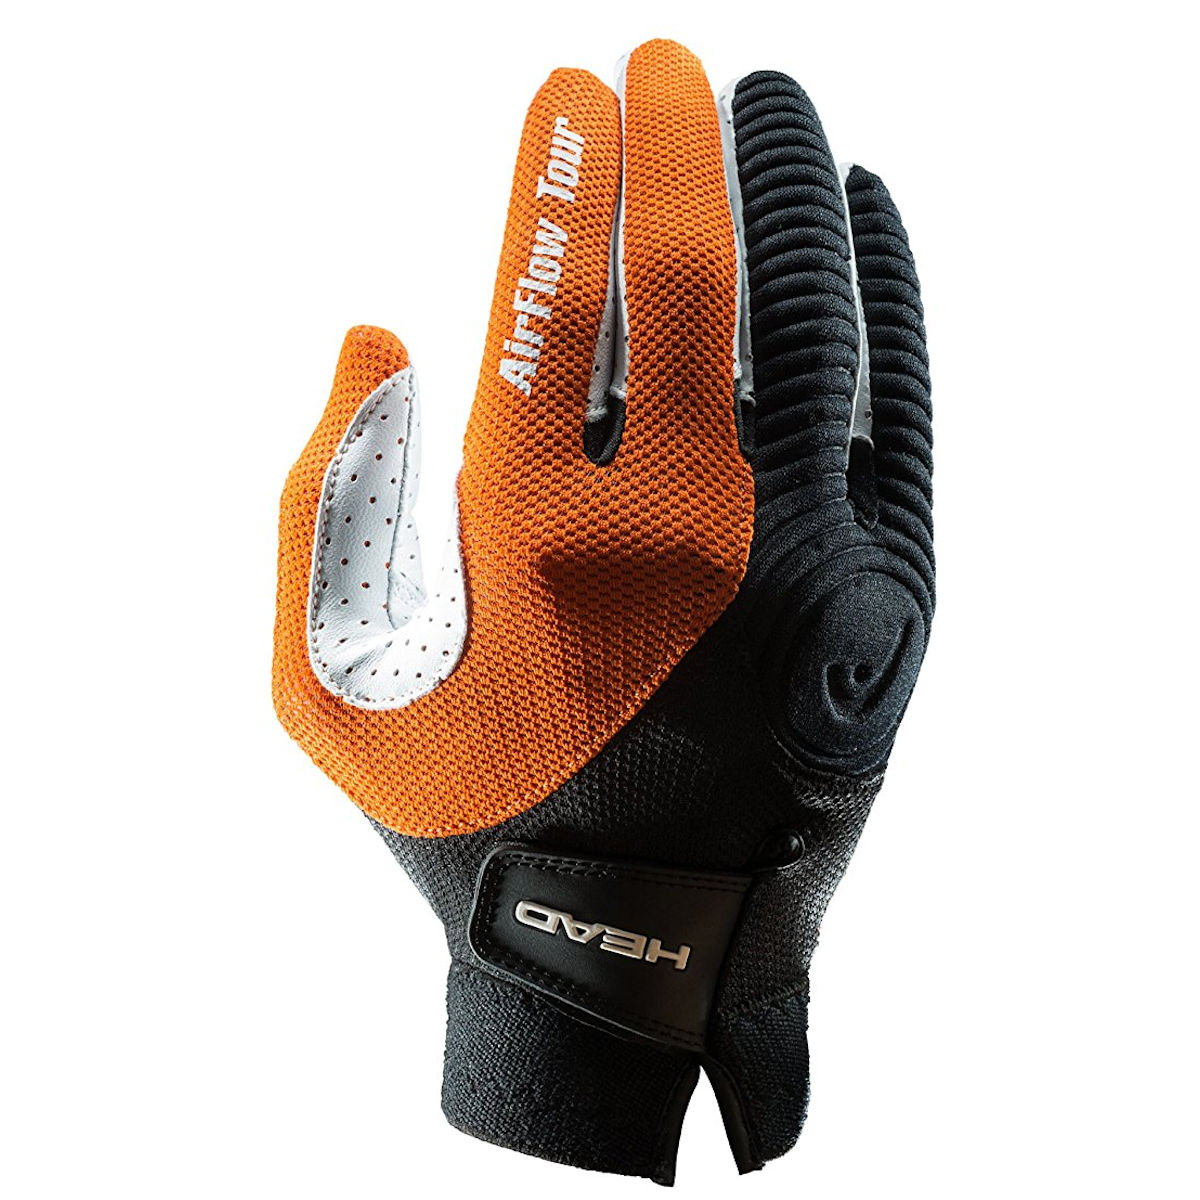 HEAD AirFlow Tour Racquetball Glove, Right Hand, X-Large by